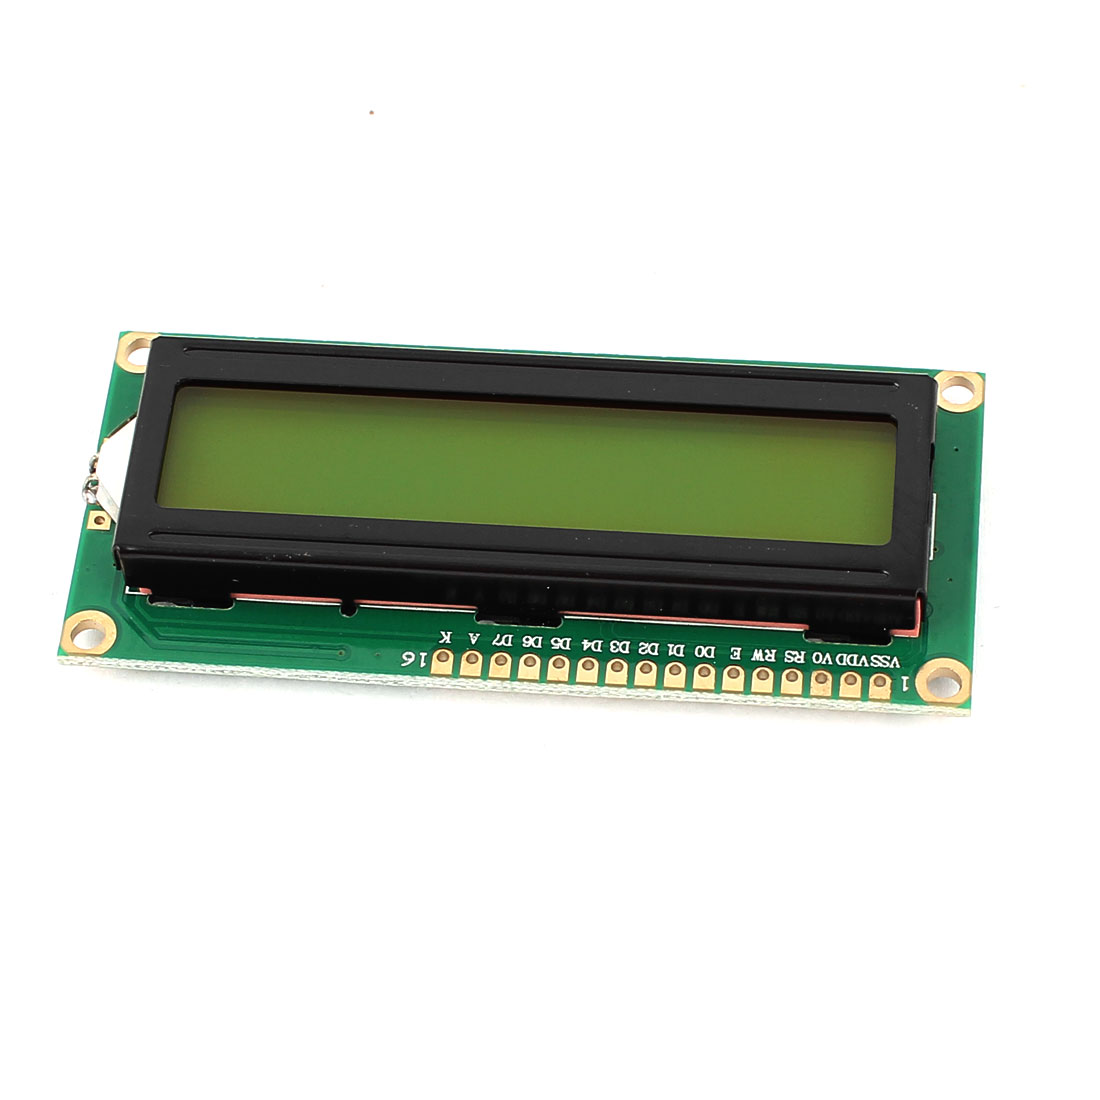 IIC/I2C LCD1602 Display Dot Matrix LCD Screen DC 5V Module for MCU